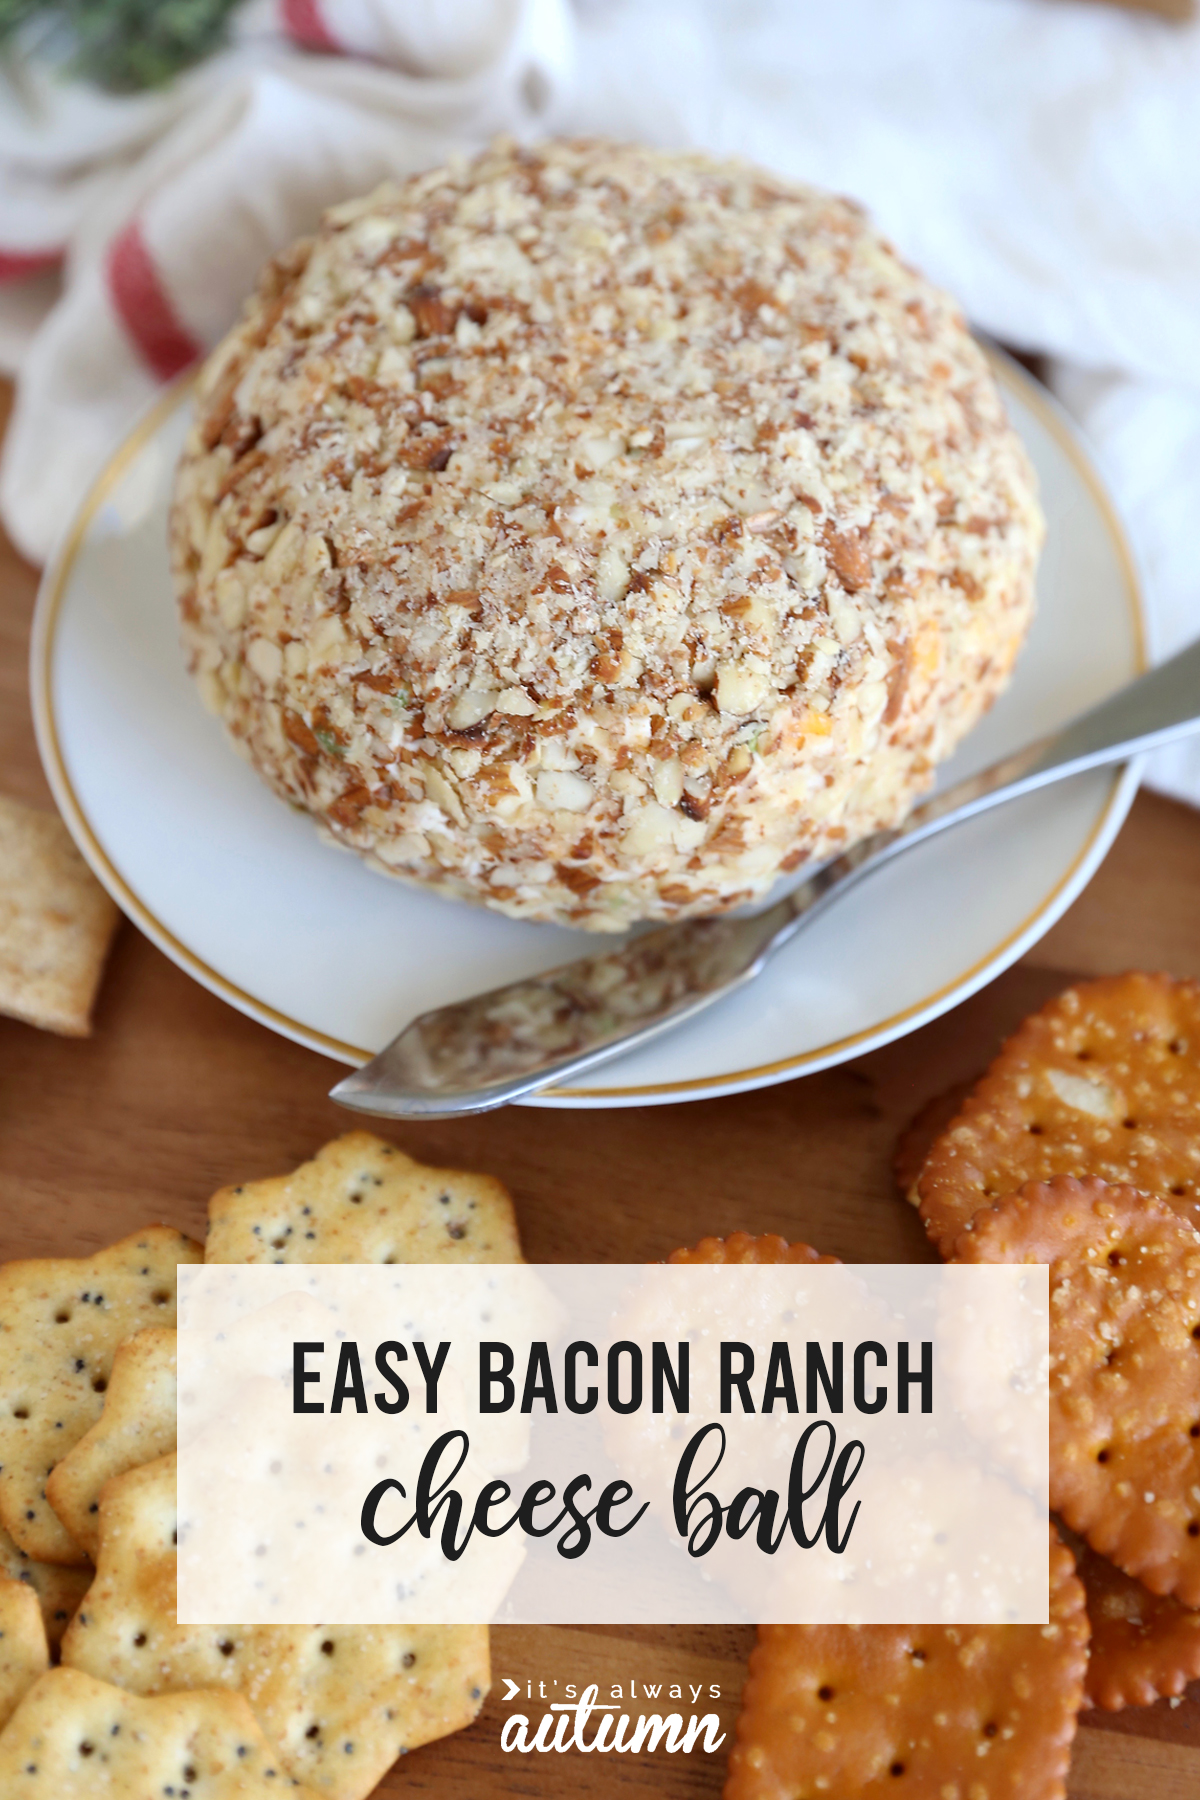 You will LOVE this easy bacon ranch cheeseball! The perfect easy appetizer for the holidays or anytime.